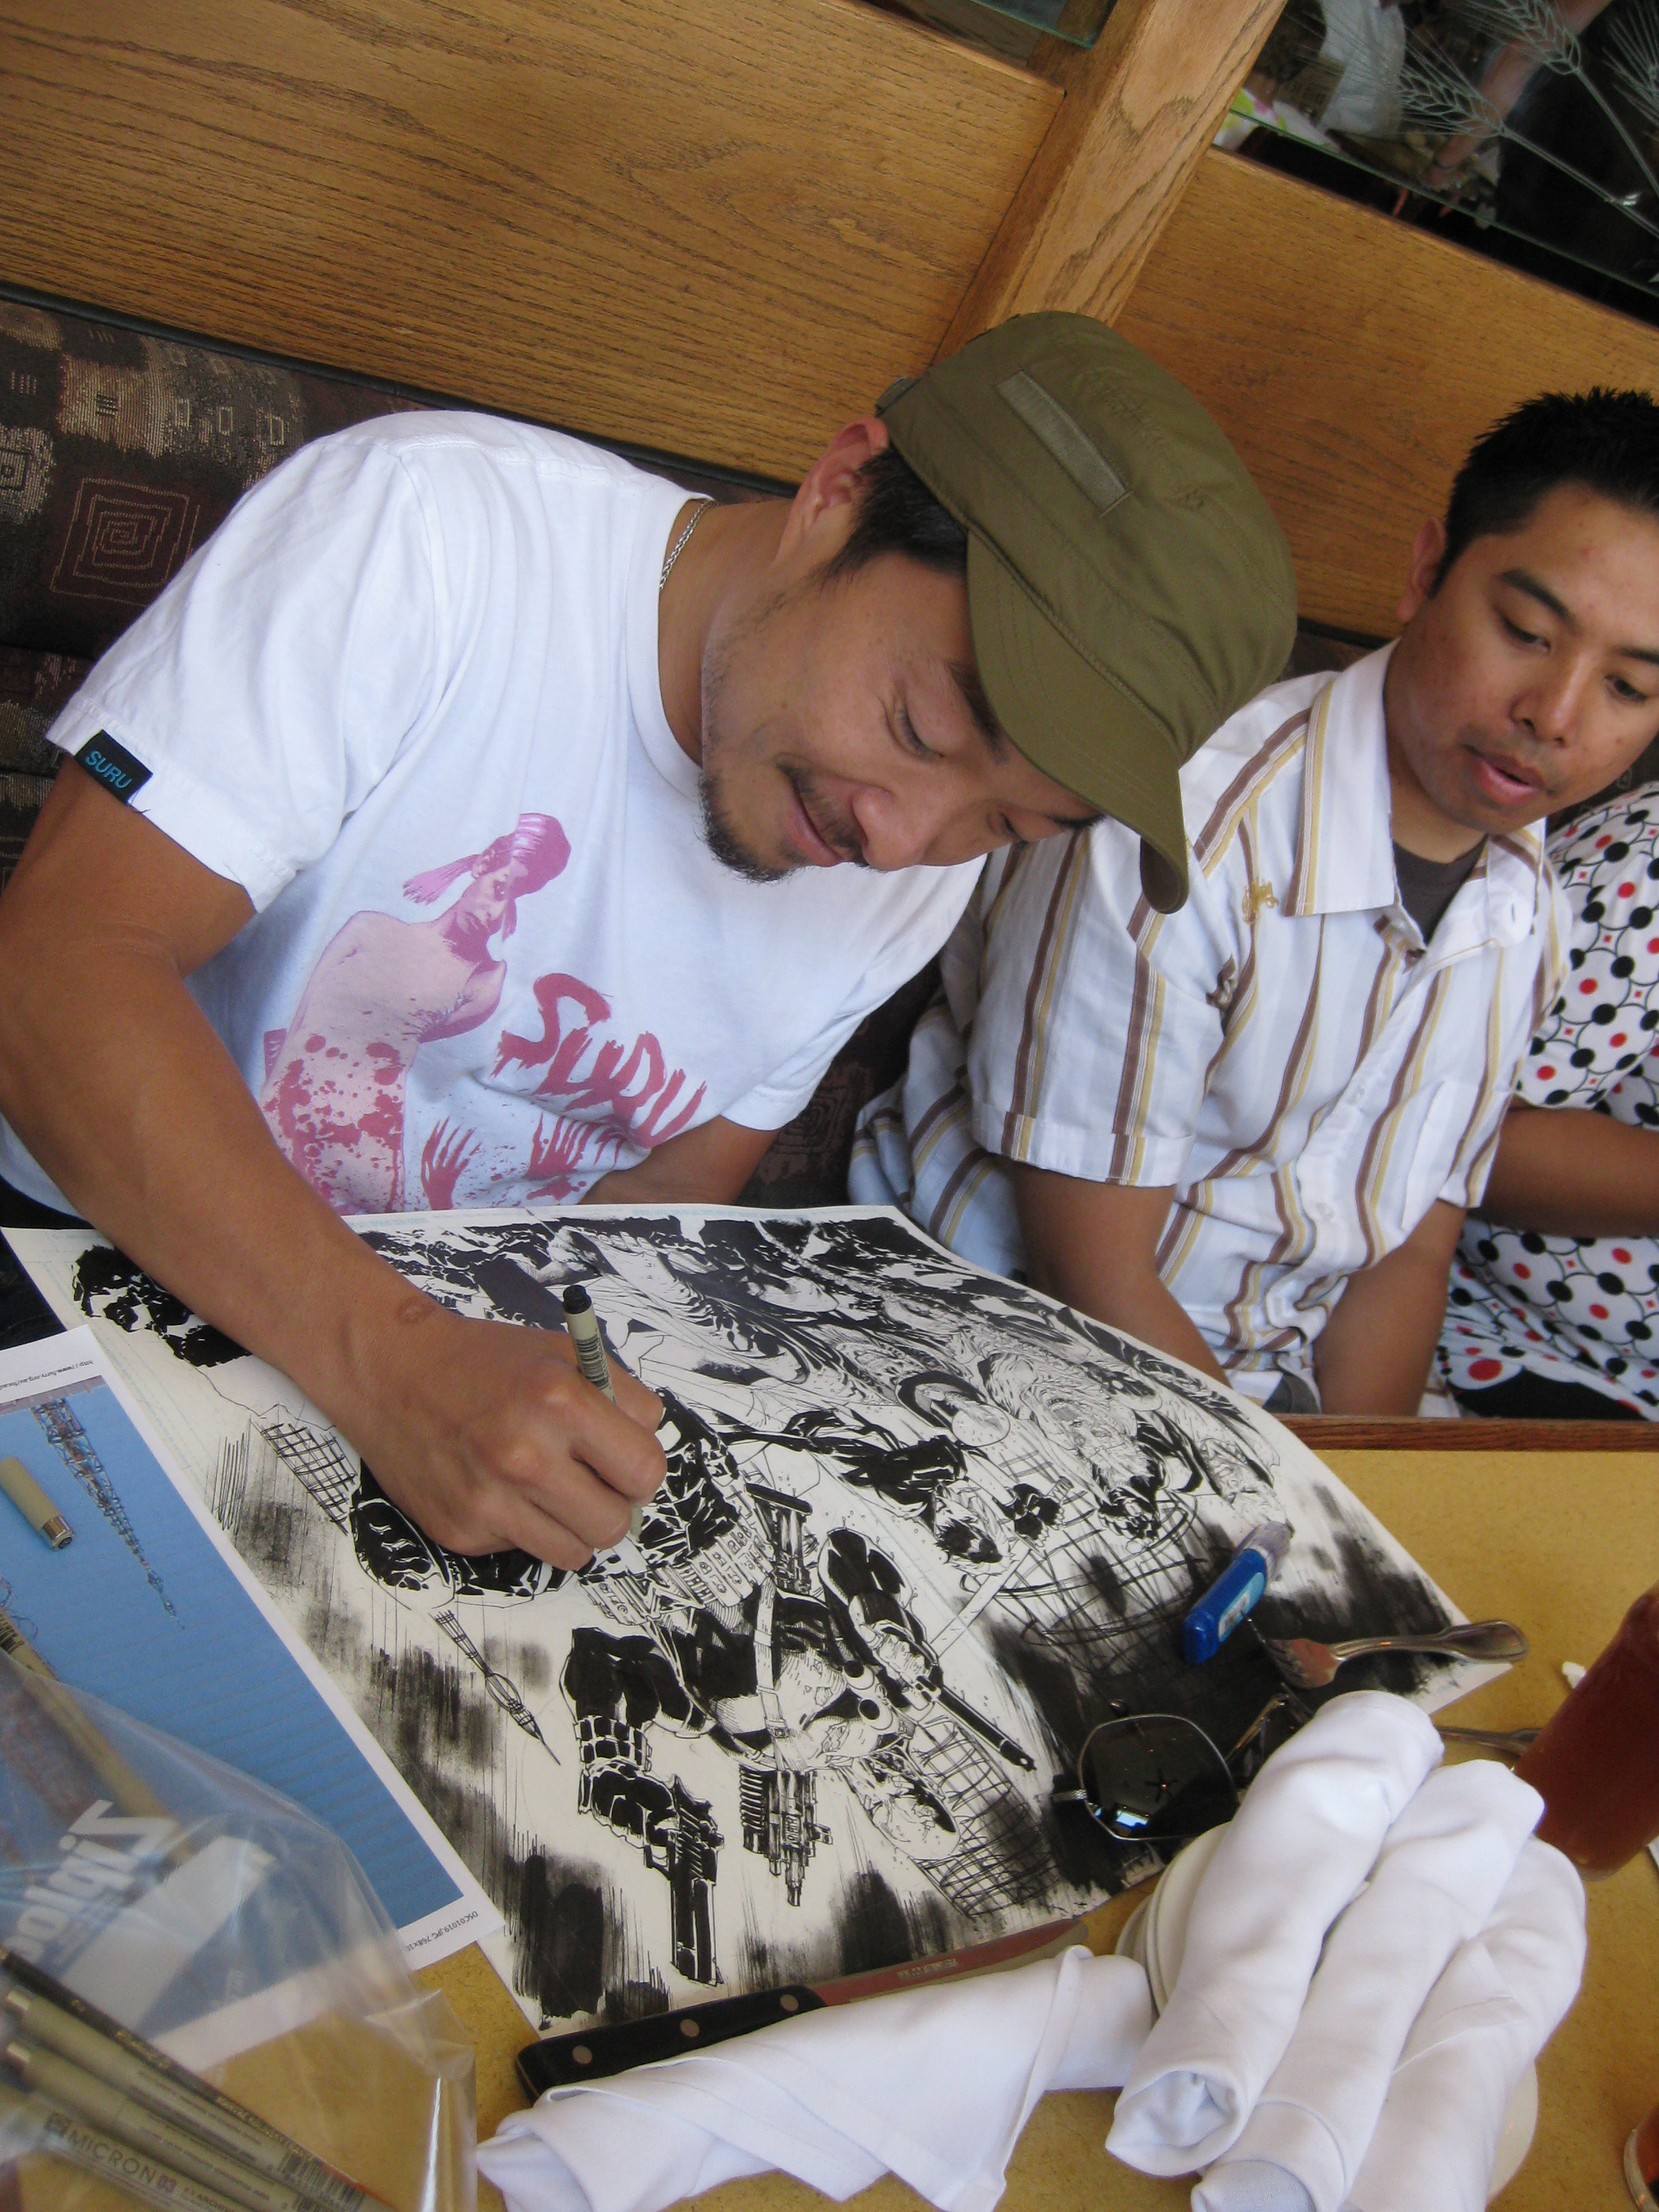 Jim Lee happily drawing the cover to Mayhem's TPB during lunch.